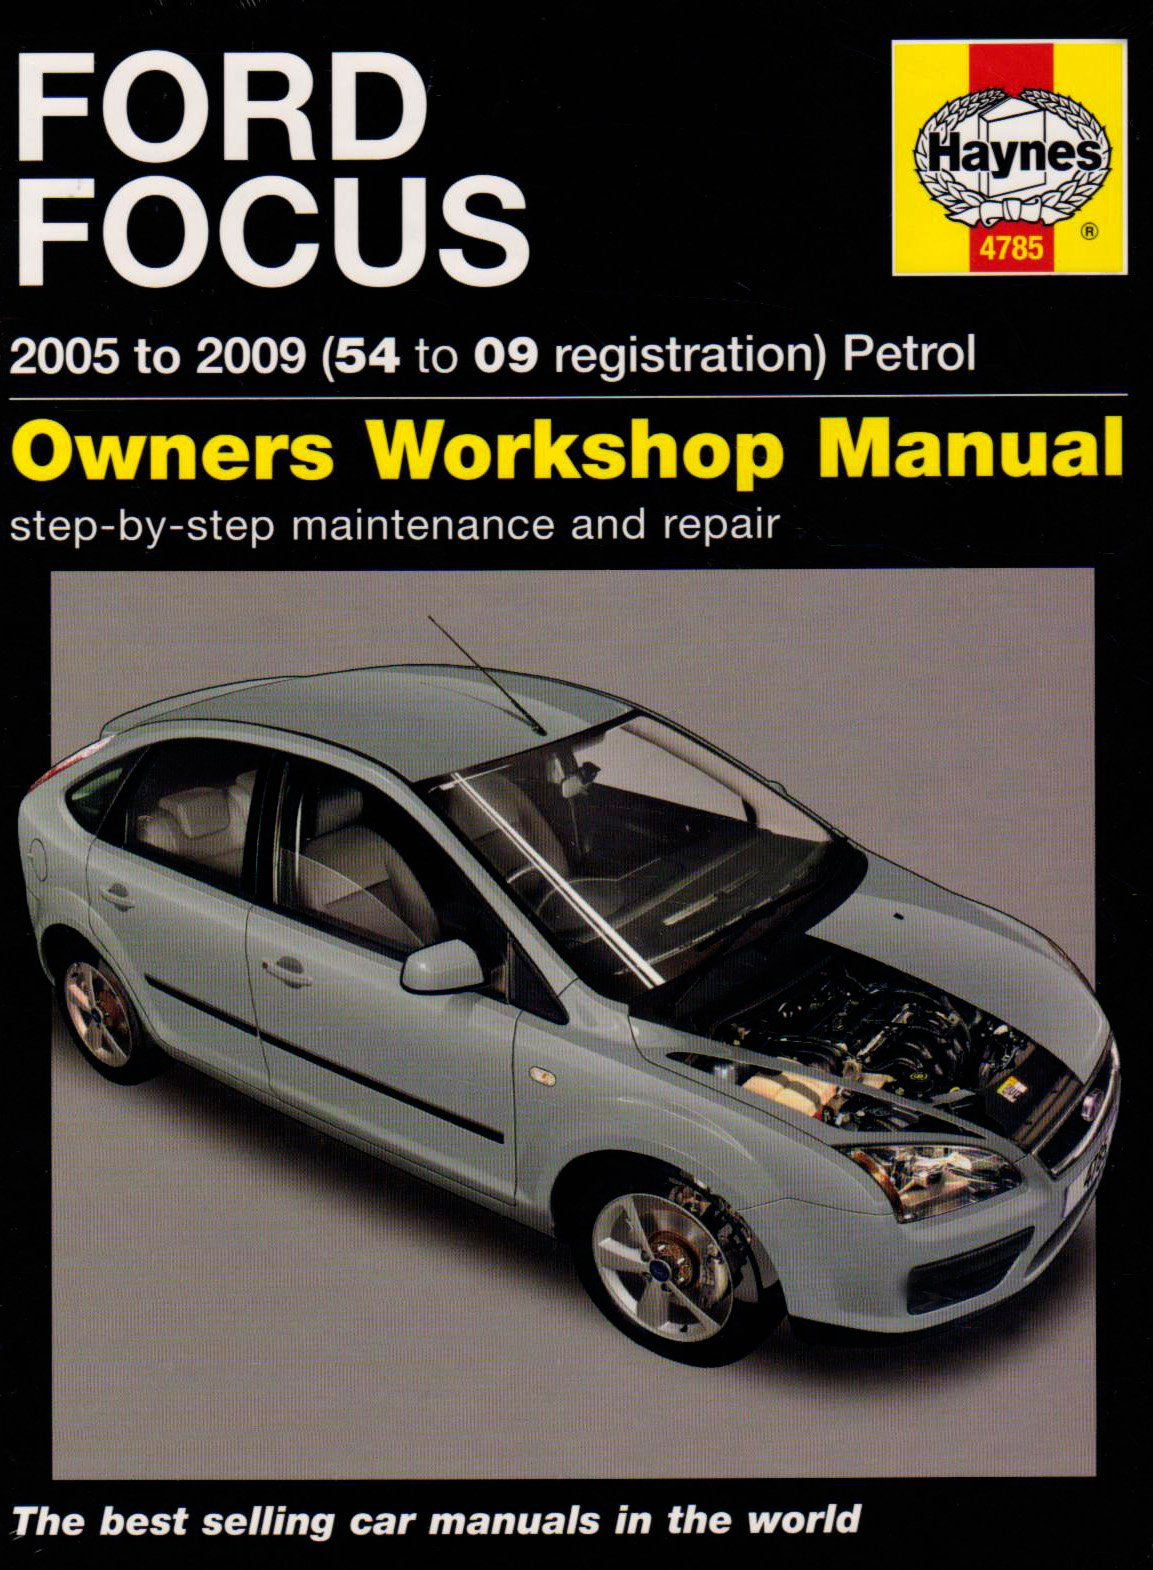 ford focus petrol 05 11 haynes repair manual amazon co uk anon rh amazon co uk 2005 Ford Focus Owner Manual 2005 Ford Focus Workshop Manual